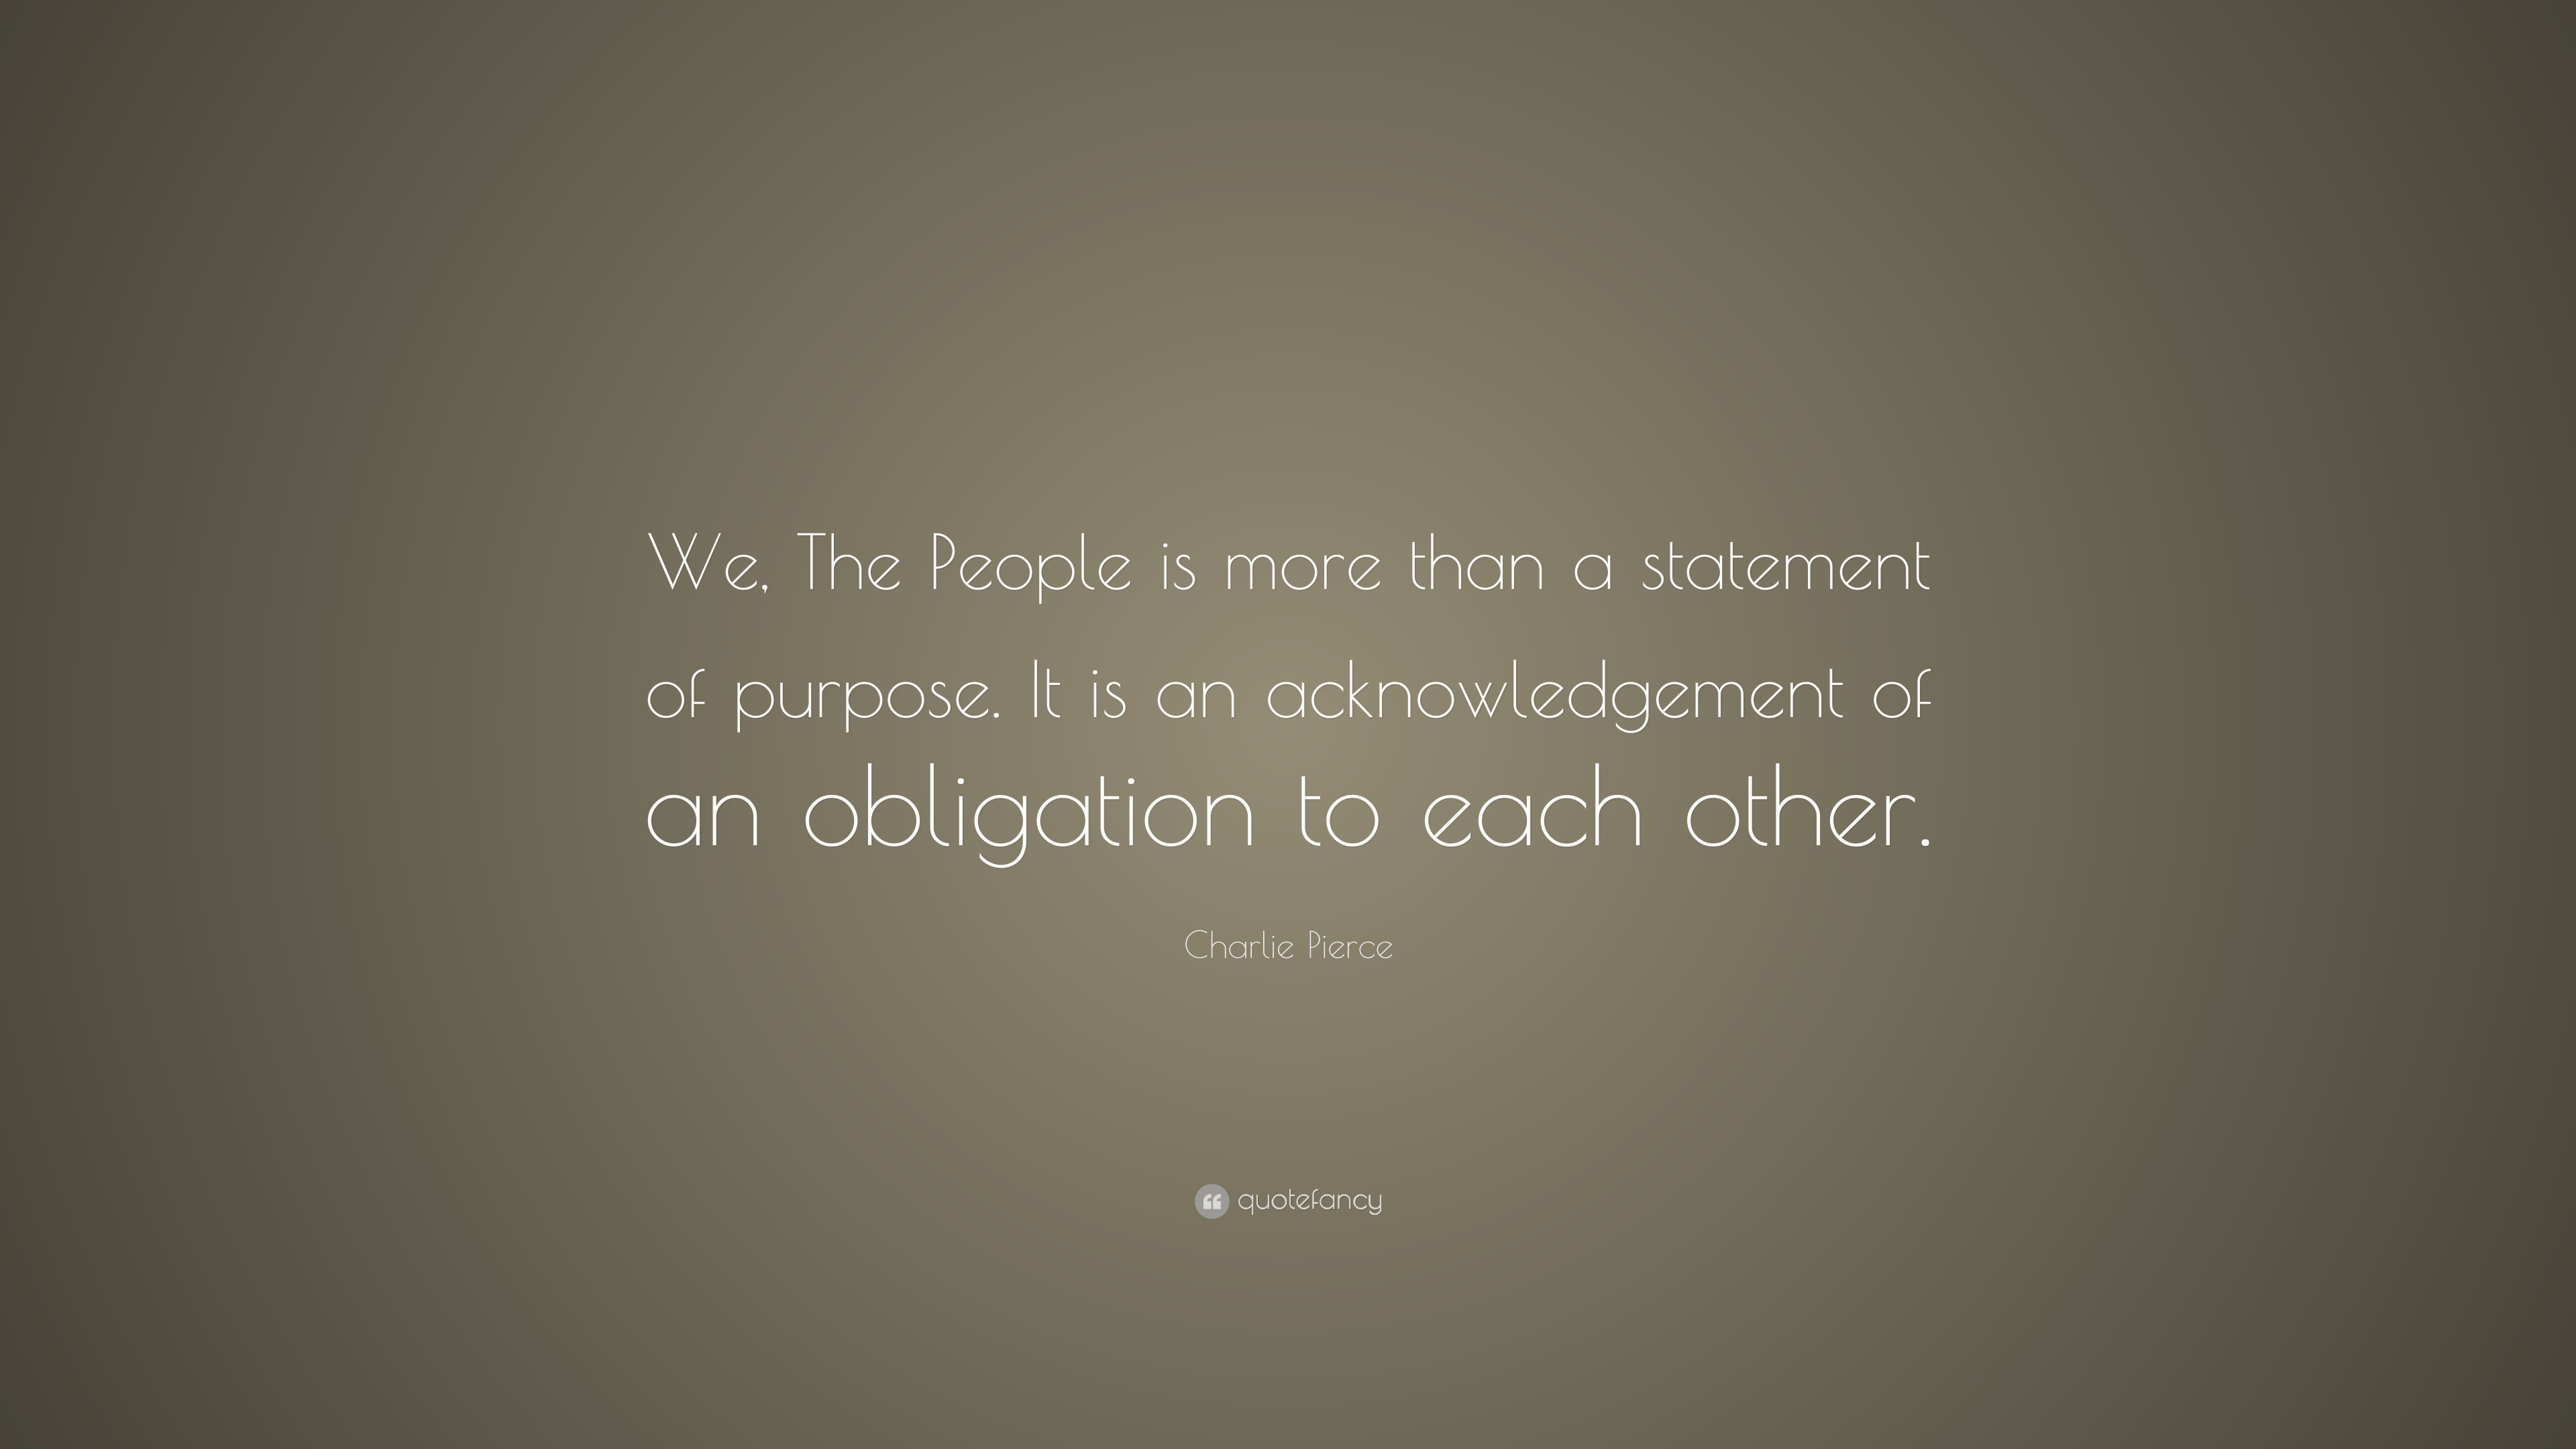 charlie pierce quote we the people is more than a statement of